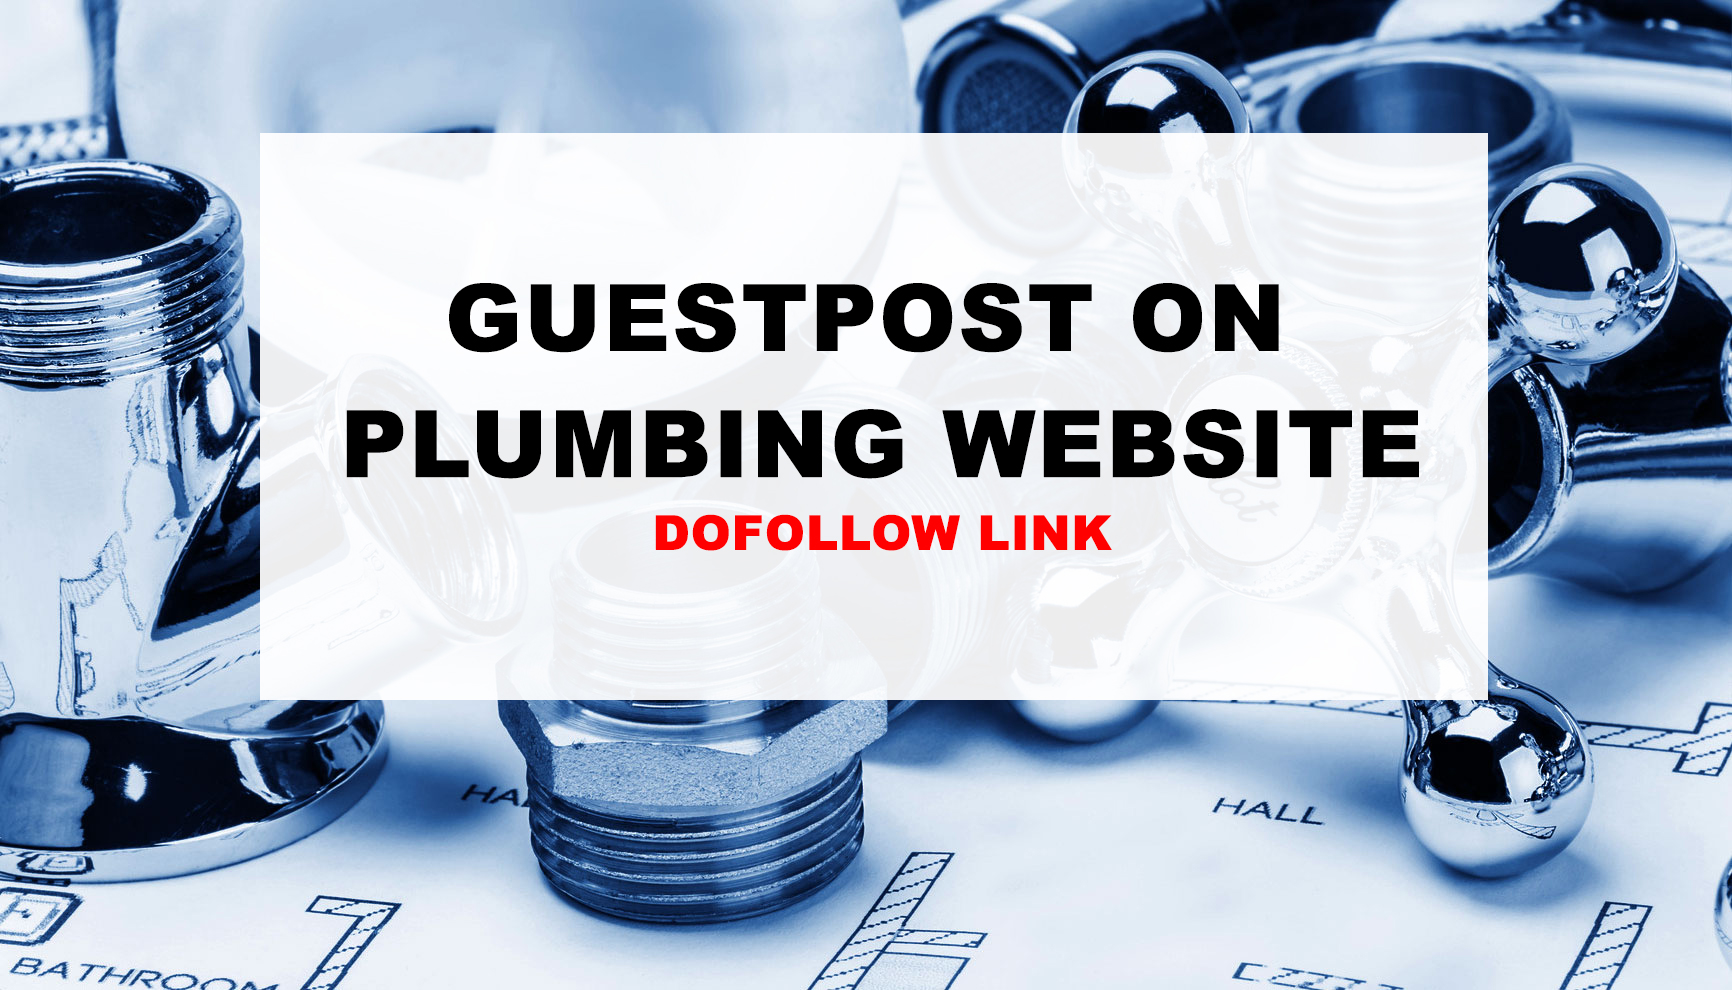 Publish a guest post on a Plumbing Website